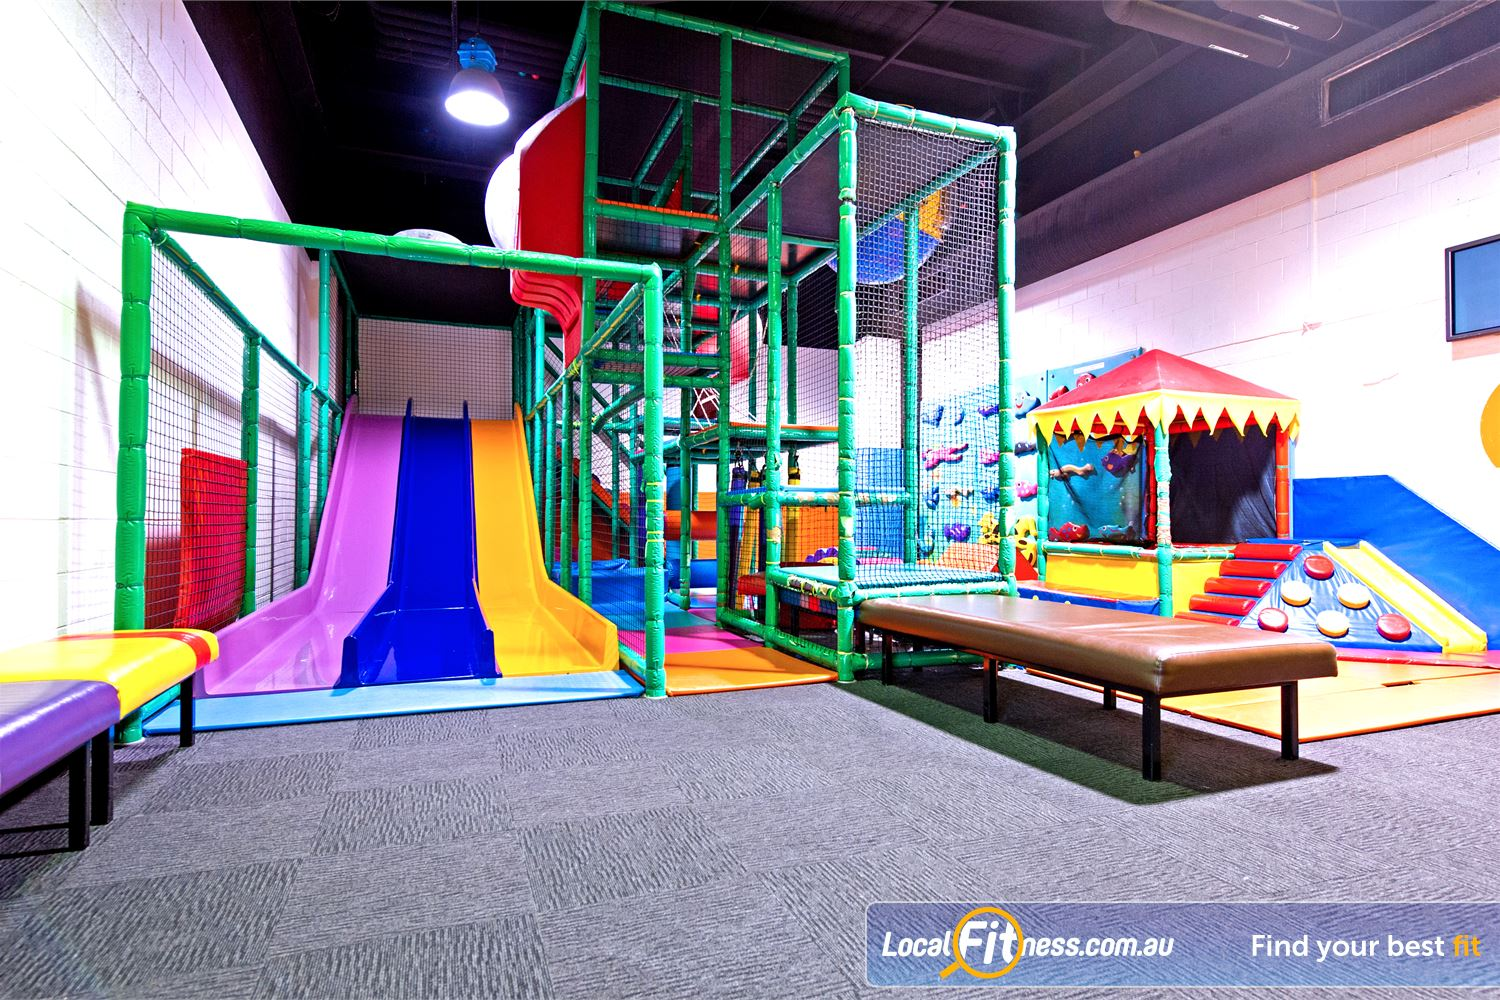 Vibe Health Clubs Near Doonside Your children will love the activities at Vibe Blacktown.